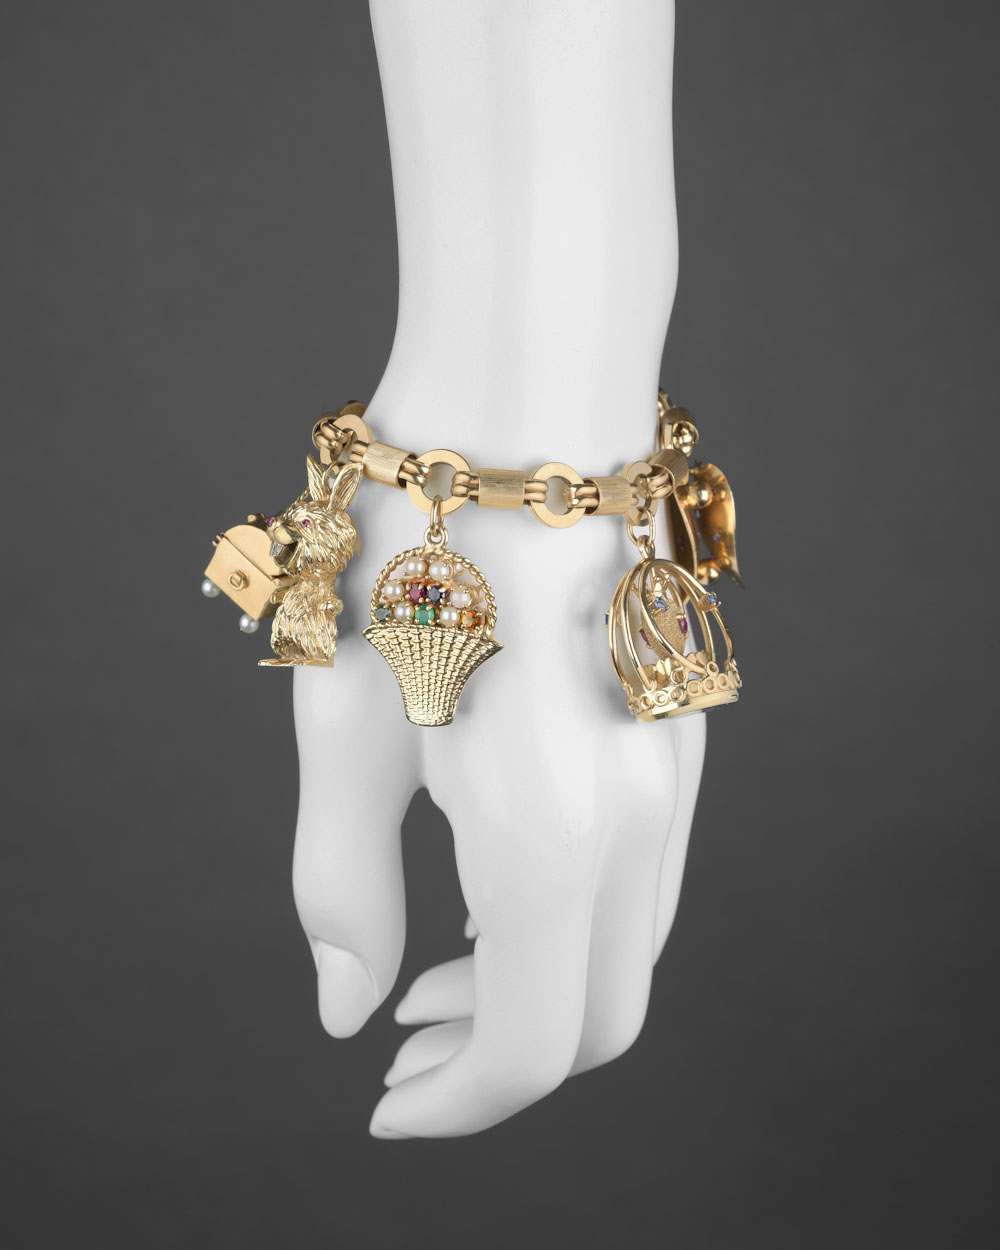 Whimsical 14k Yellow Gold Charm Bracelet Composed Of Flat Open Circular And Textured Barrel Shaped Links Suspending Eight Vintage